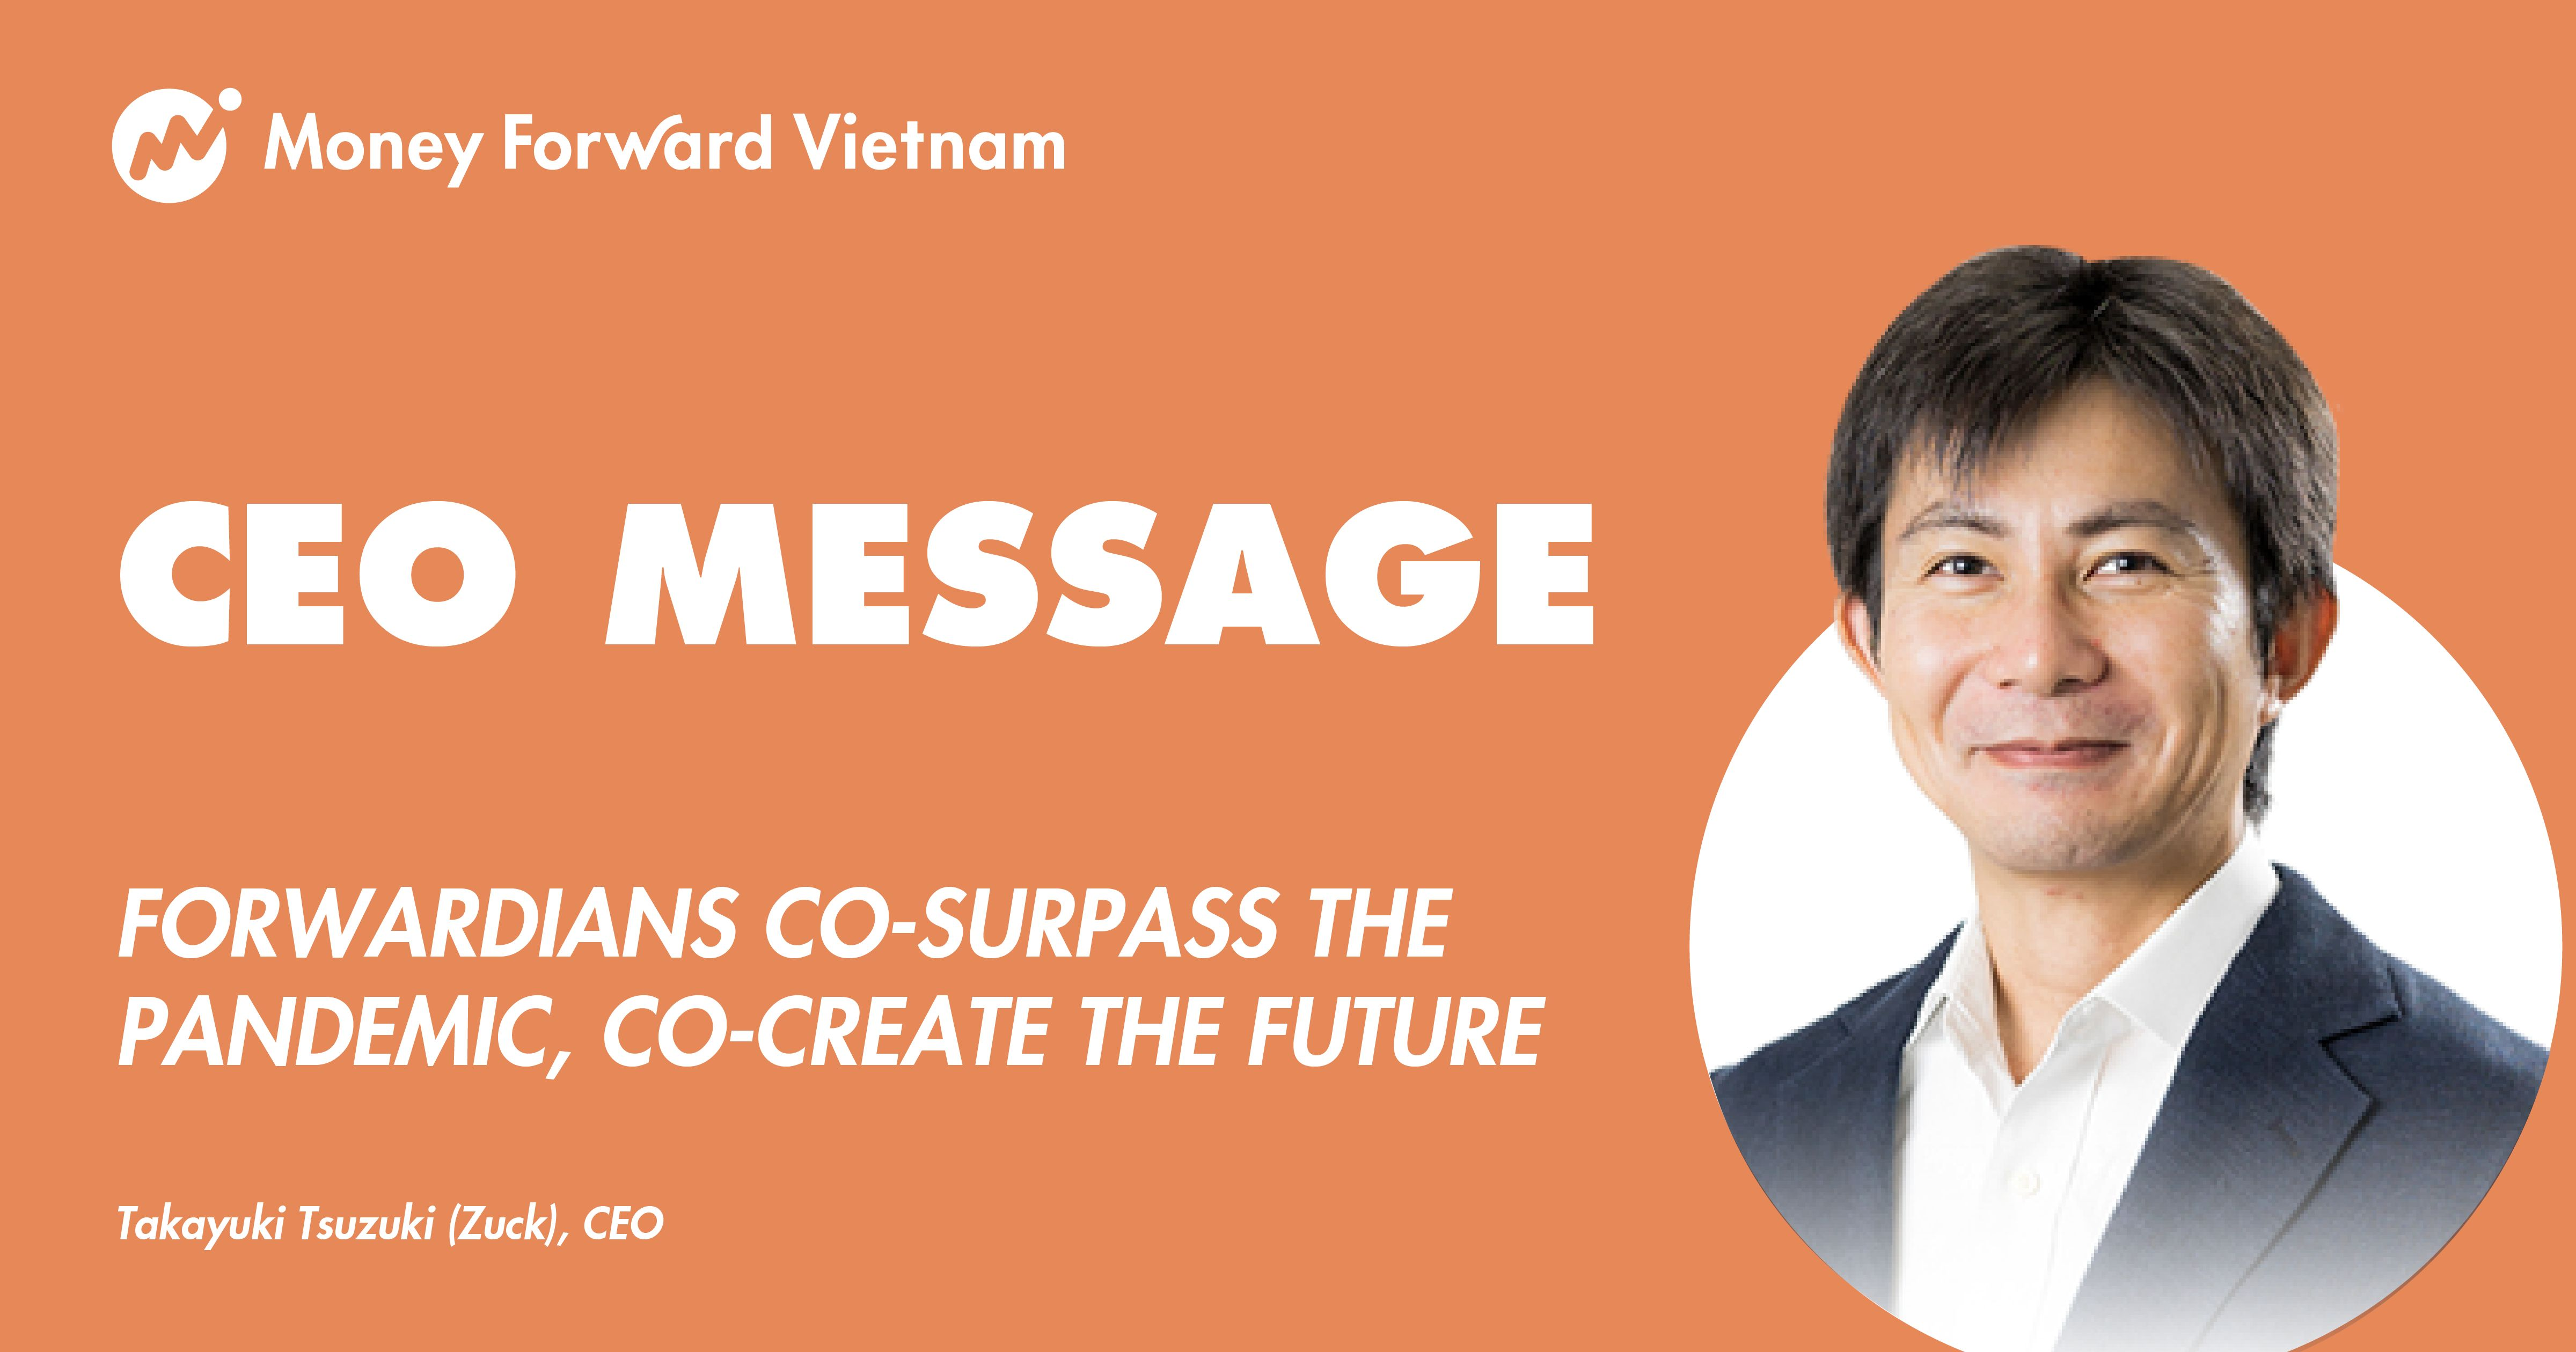 CEO message - Forwardians co-surpass this pandemic, co-create the future